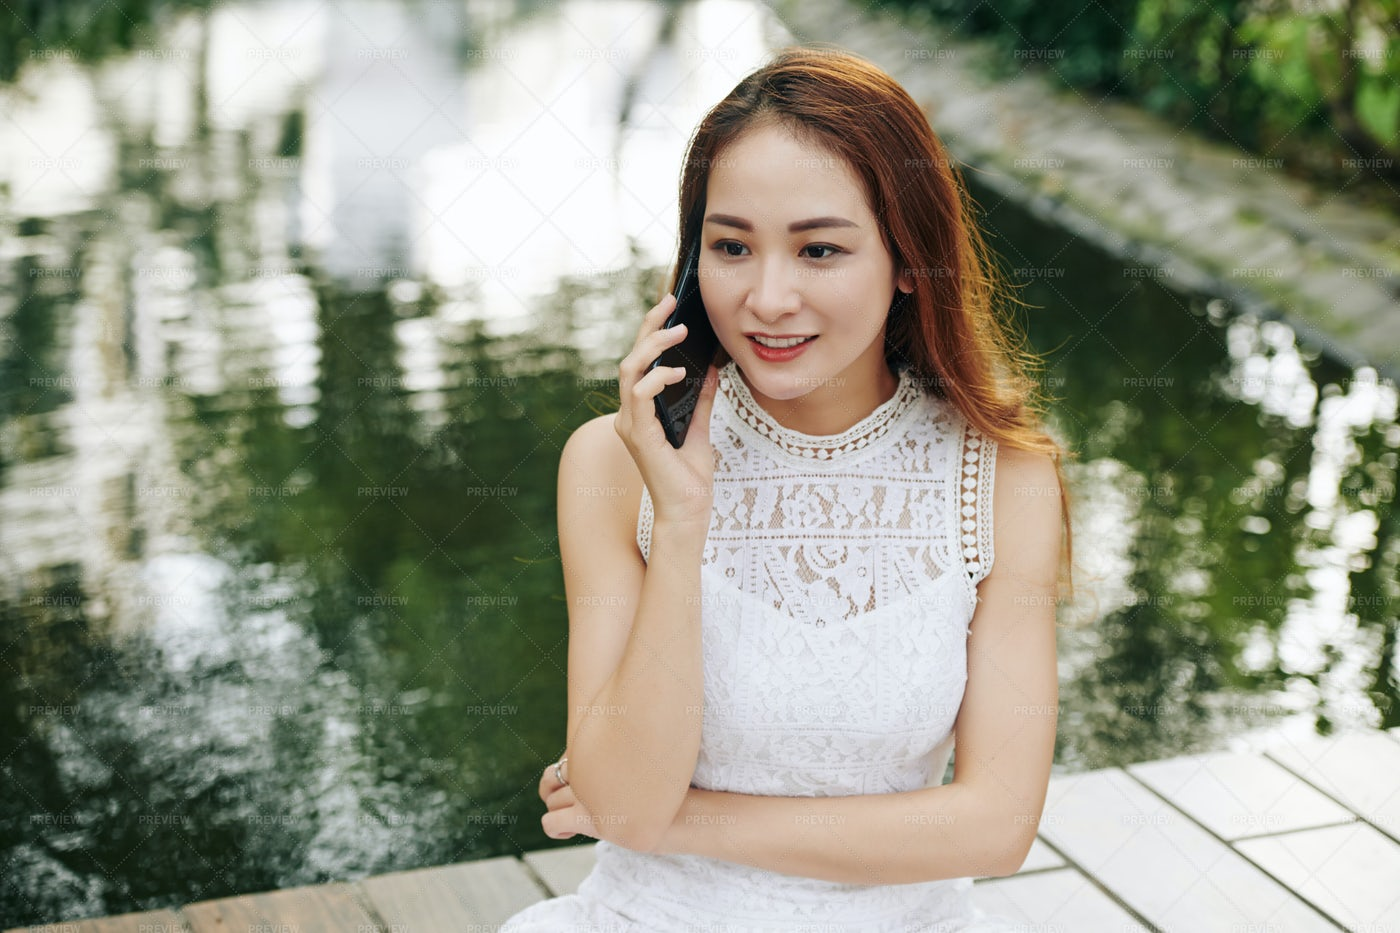 Young Woman Talking On Phone: Stock Photos